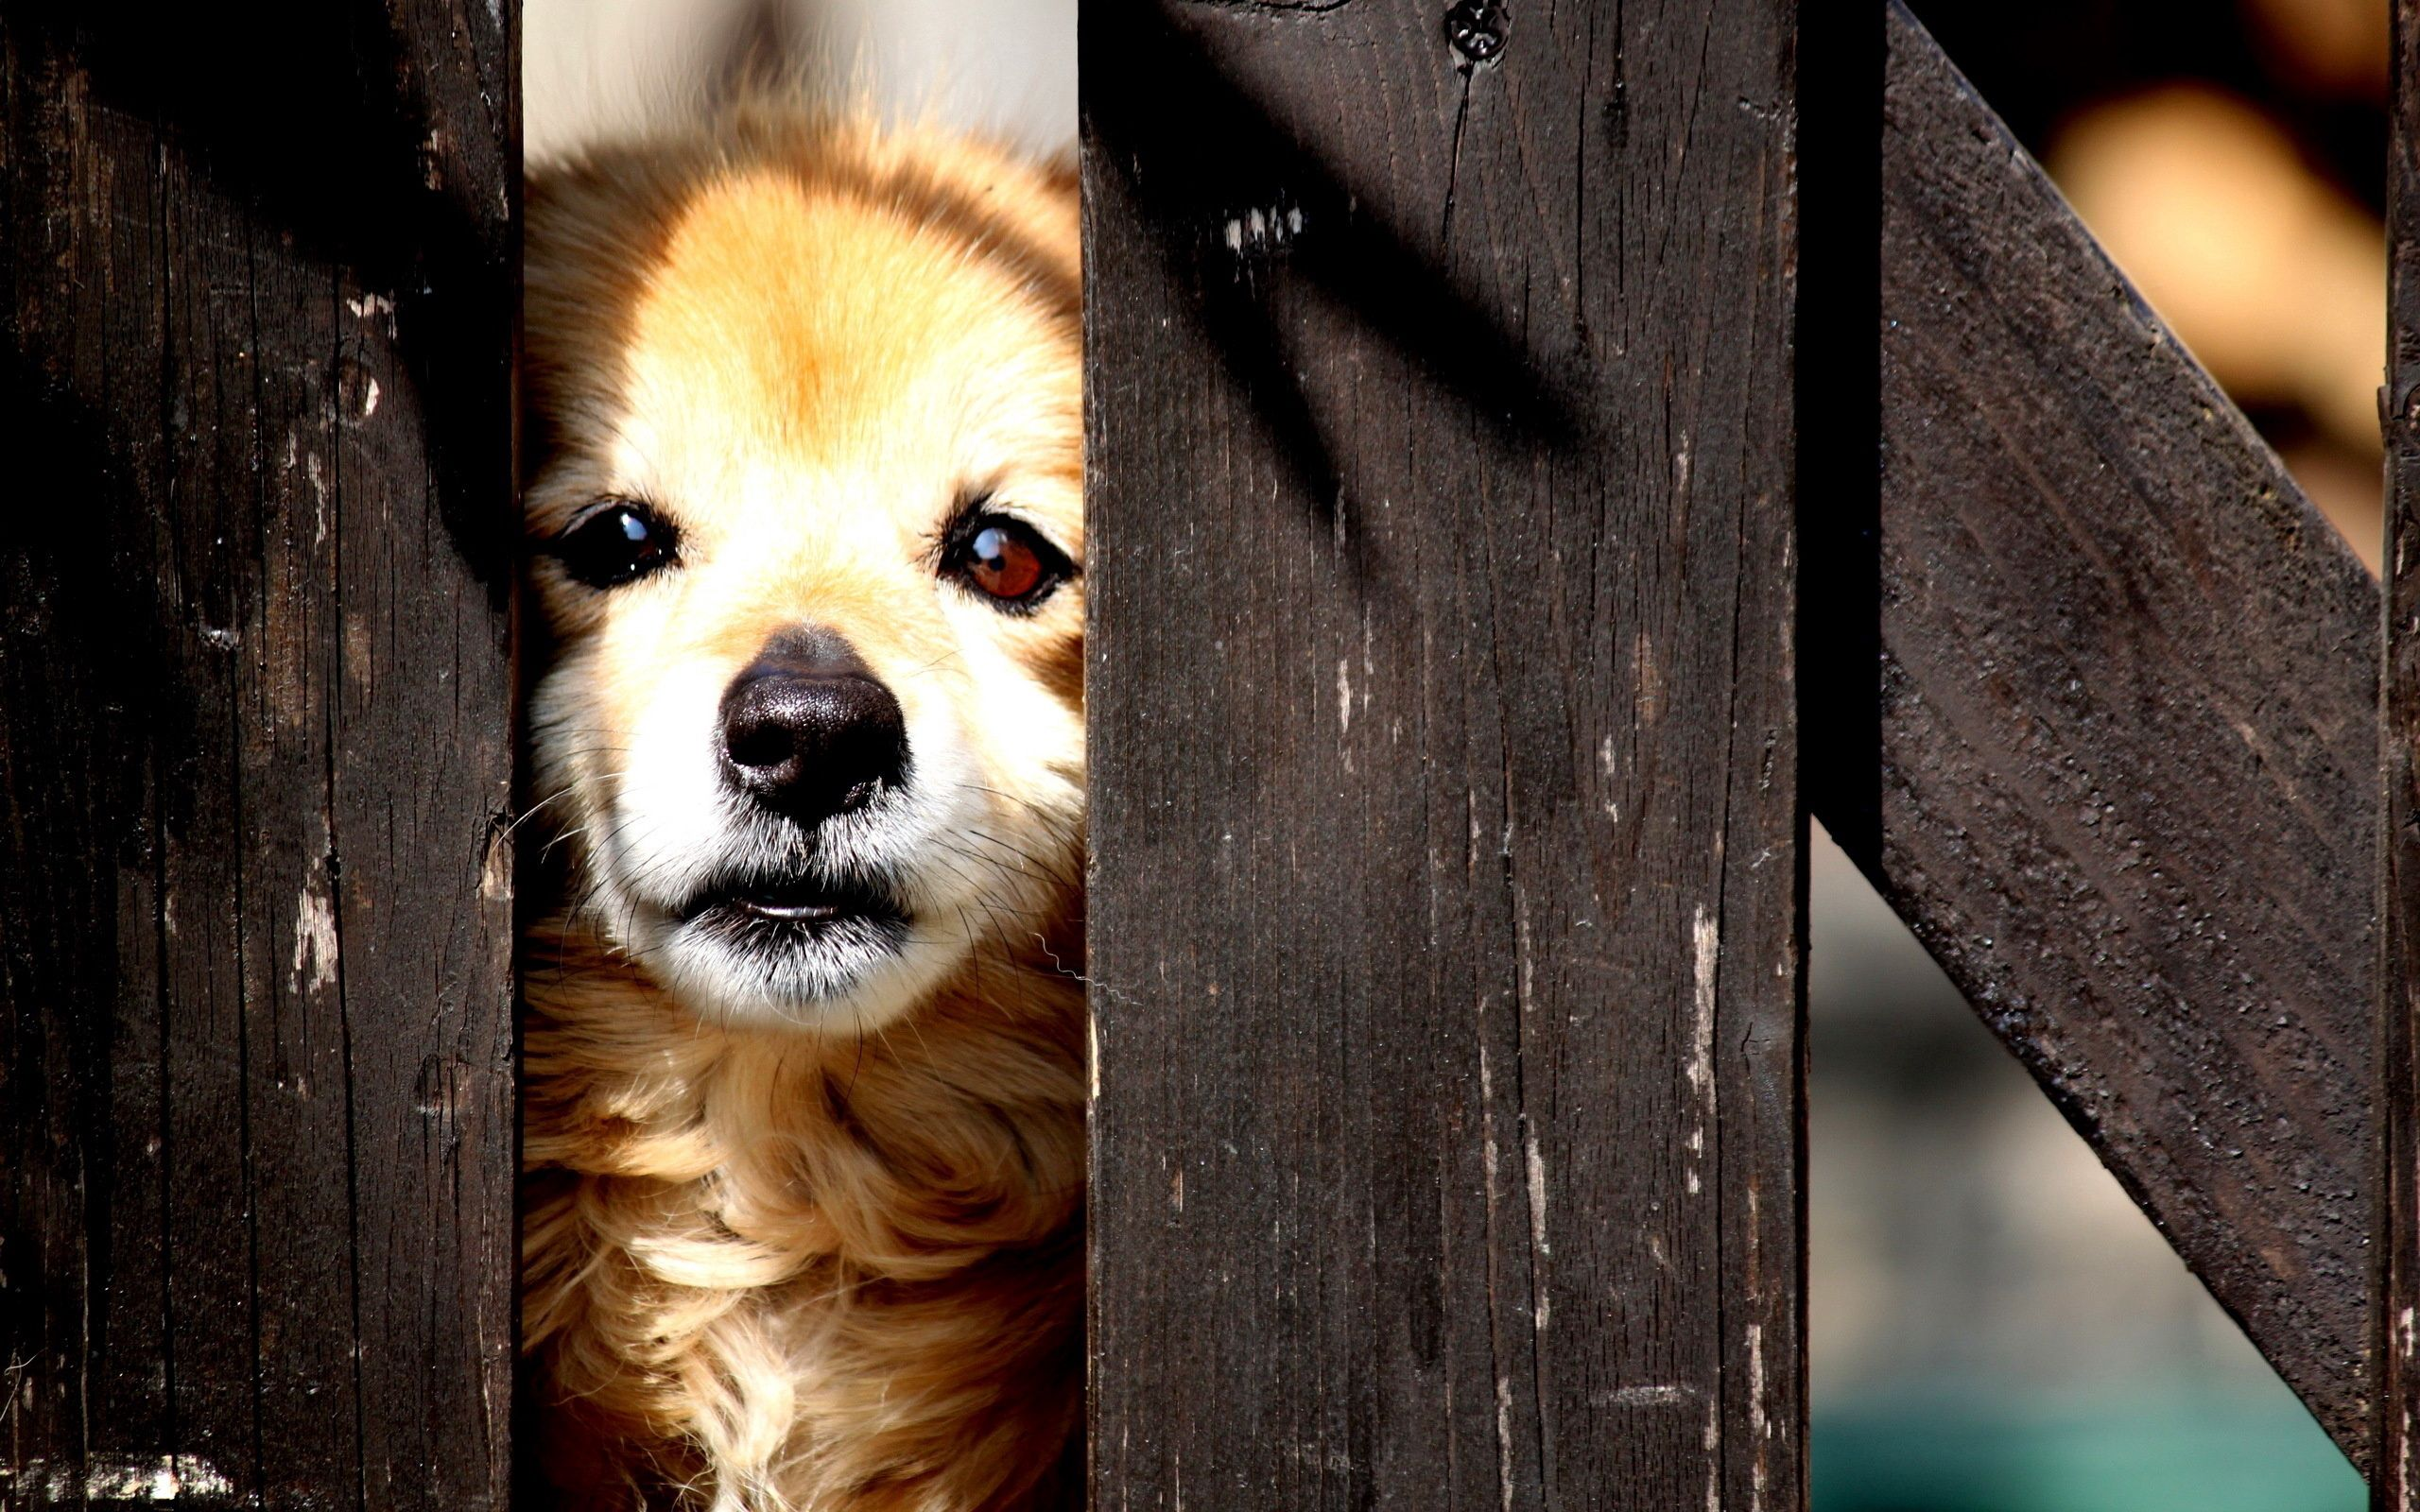 100989 download wallpaper Animals, Puppy, Peek Out, Look Out, Fence, Kid, Tot screensavers and pictures for free